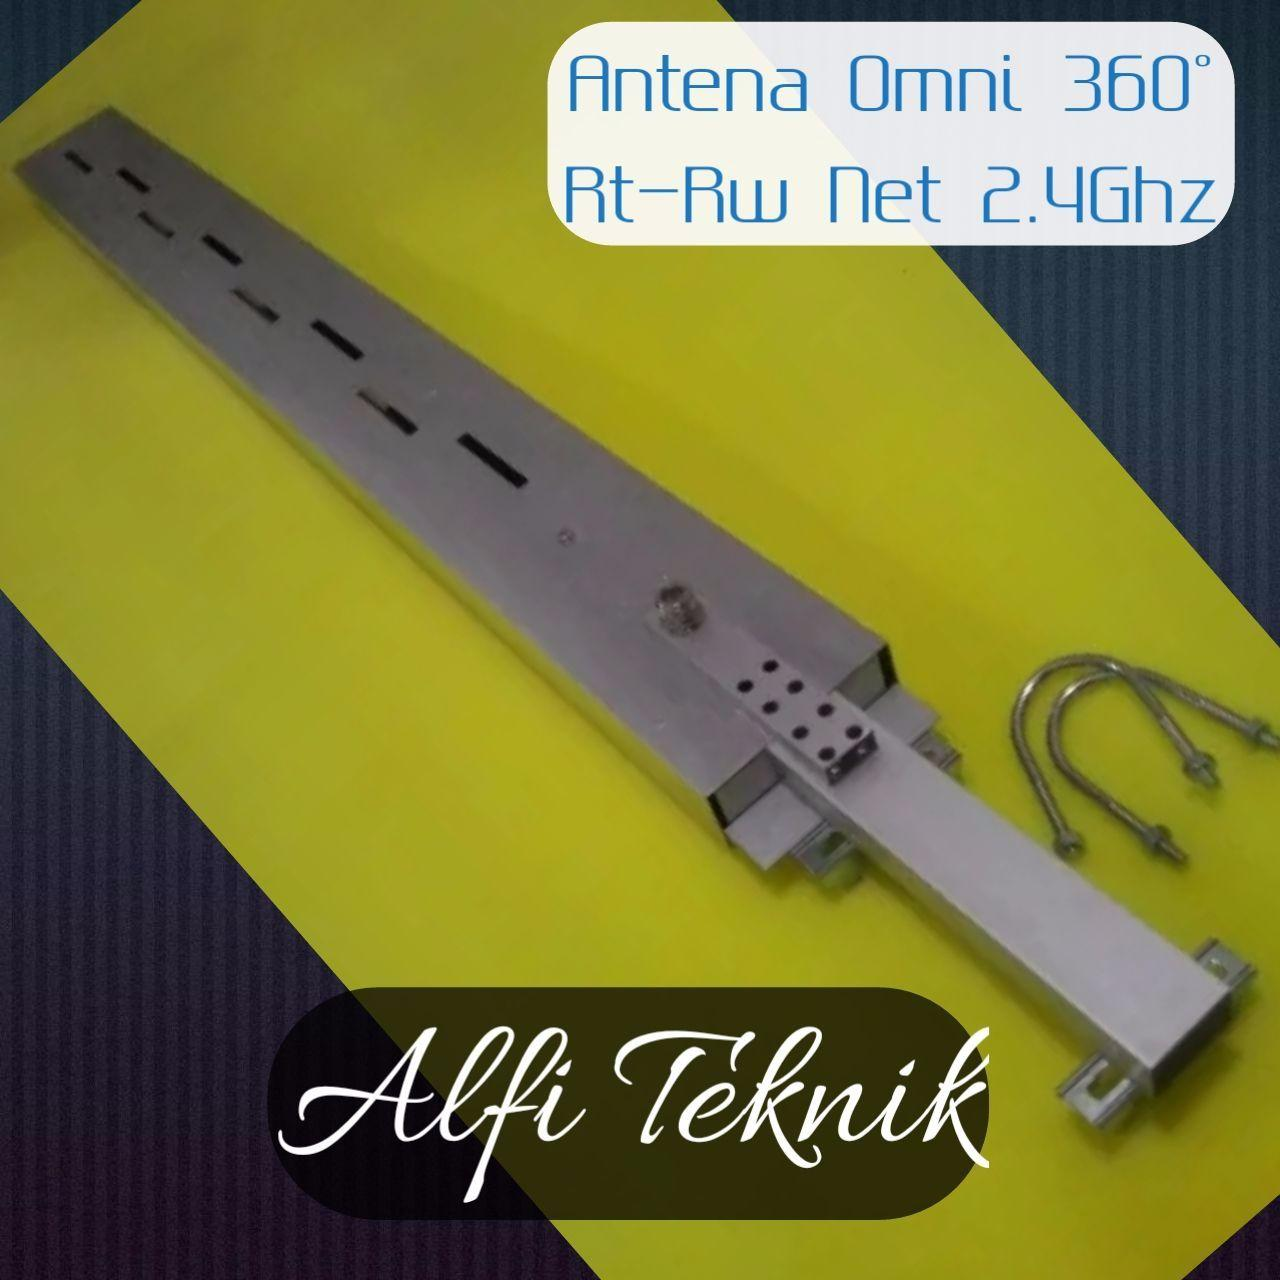 https://www.lazada.co.id/products/antena-omni-rnet-wifi-24ghz-packing-i464208462-s560382510.html